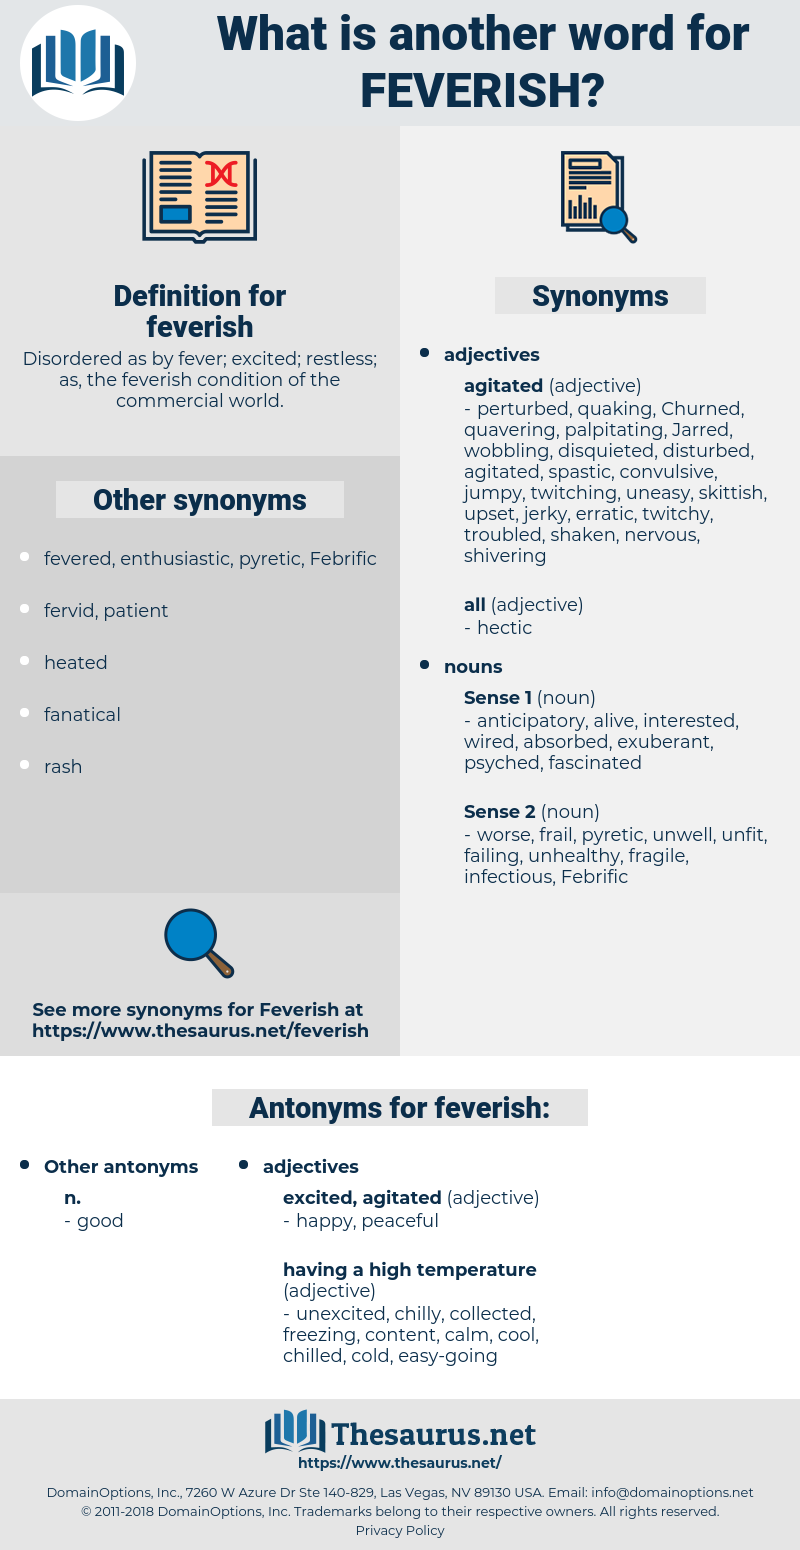 feverish, synonym feverish, another word for feverish, words like feverish, thesaurus feverish